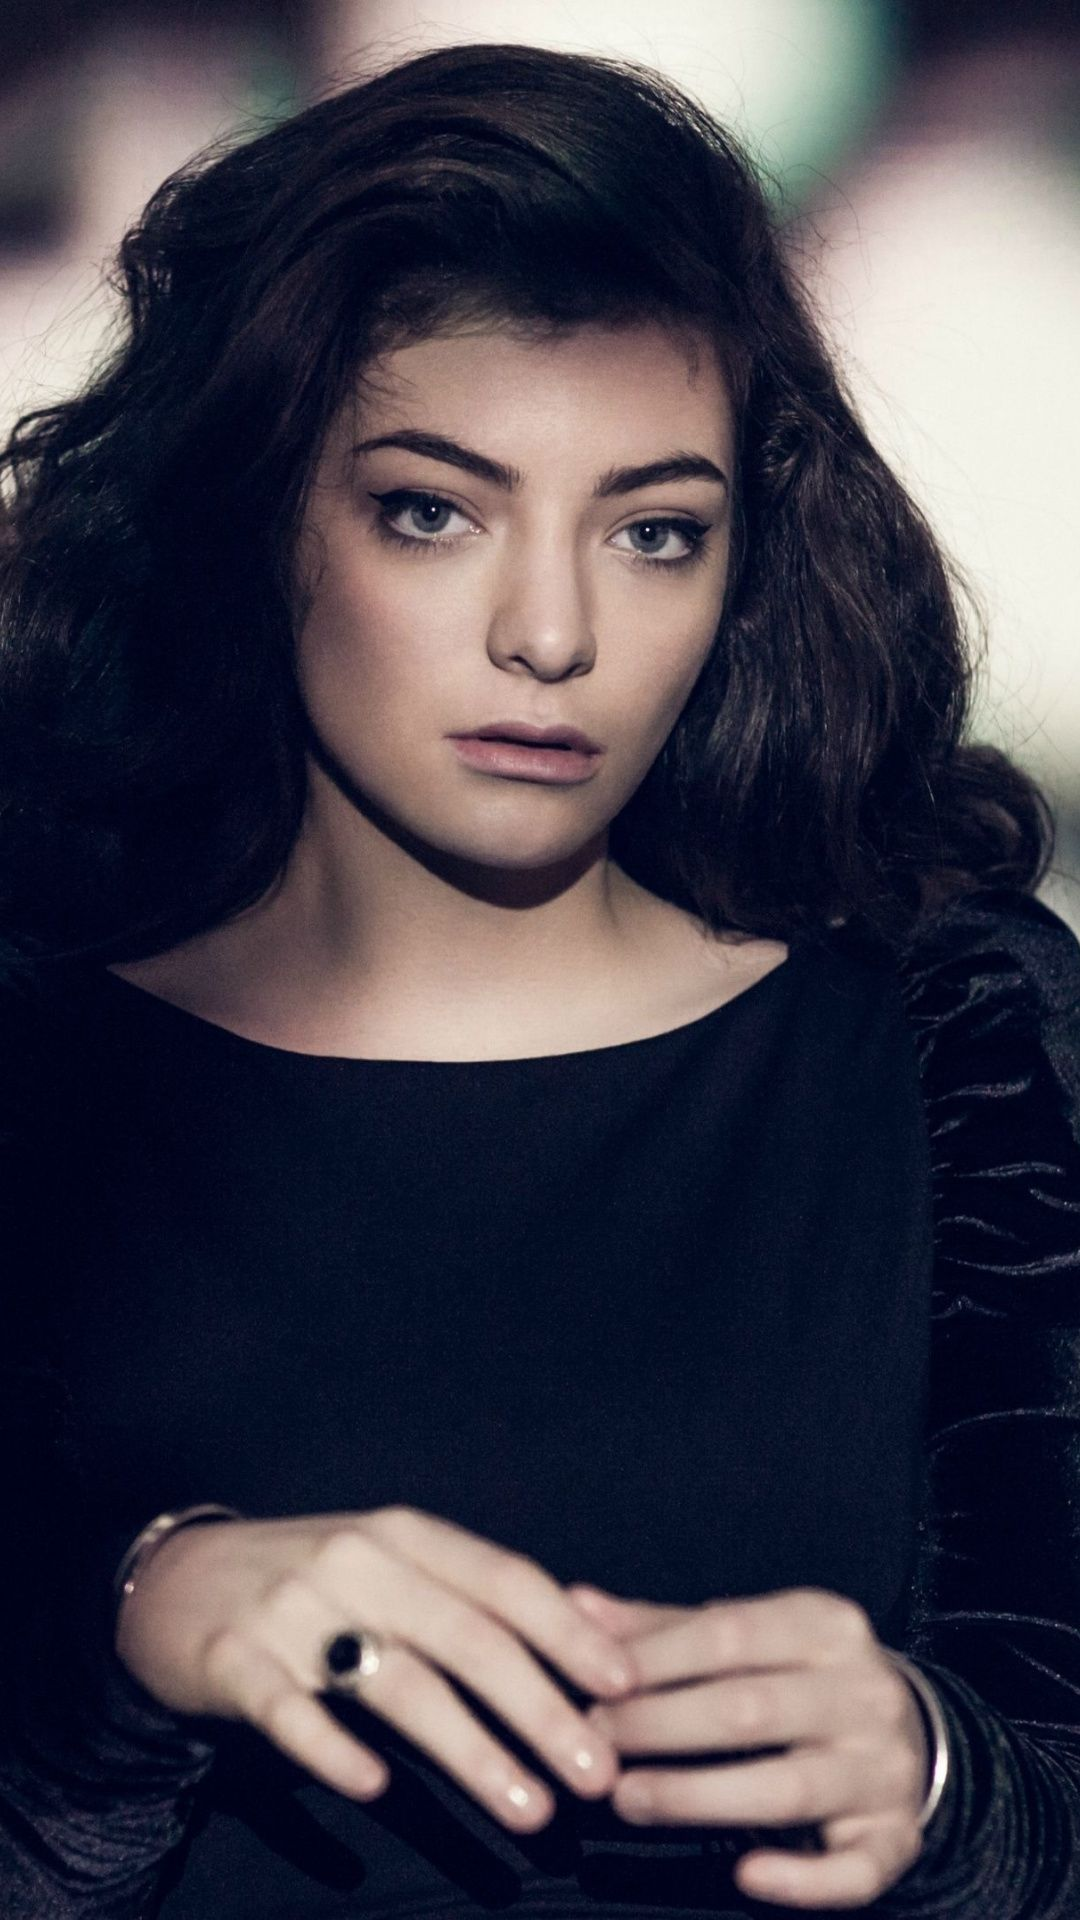 Lorde Black Dress Famous Singer Celebrity 1080x1920 Wallpaper